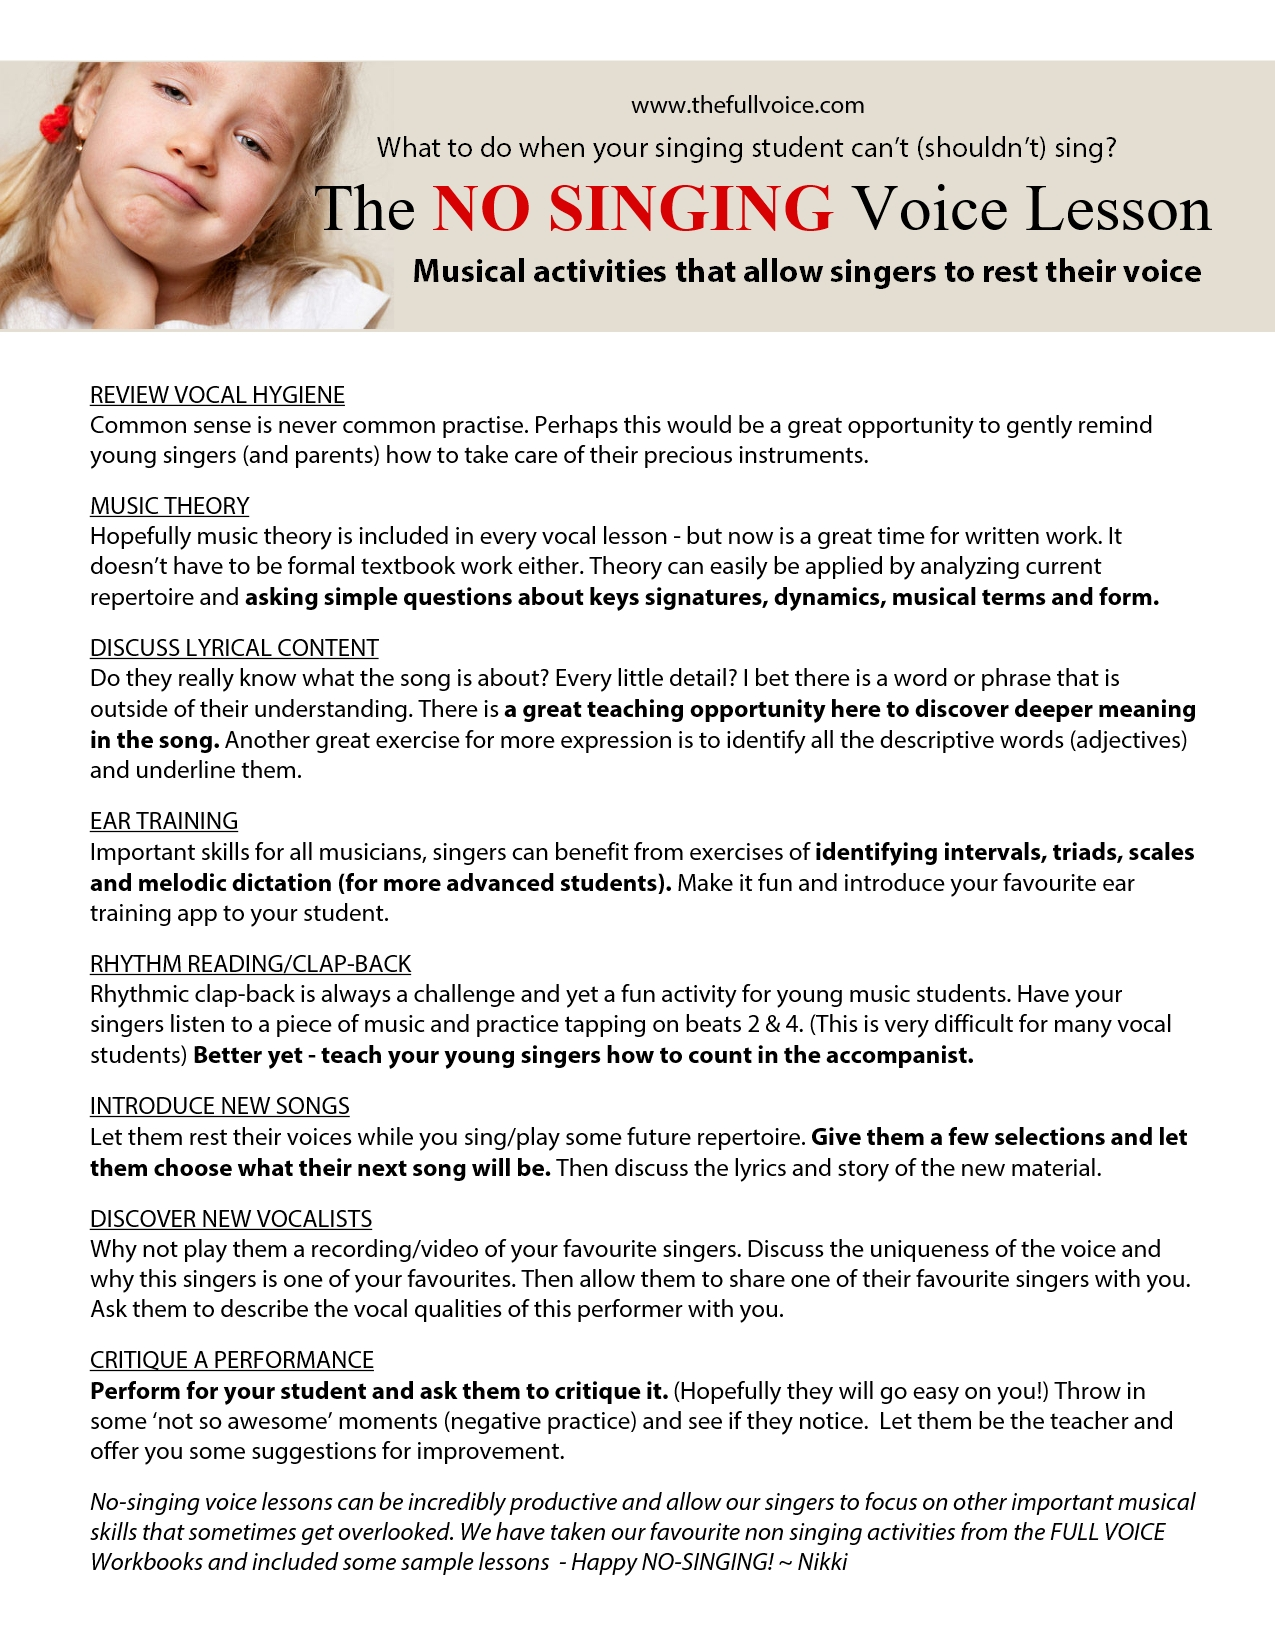 No singing Voice Lessons.jpg